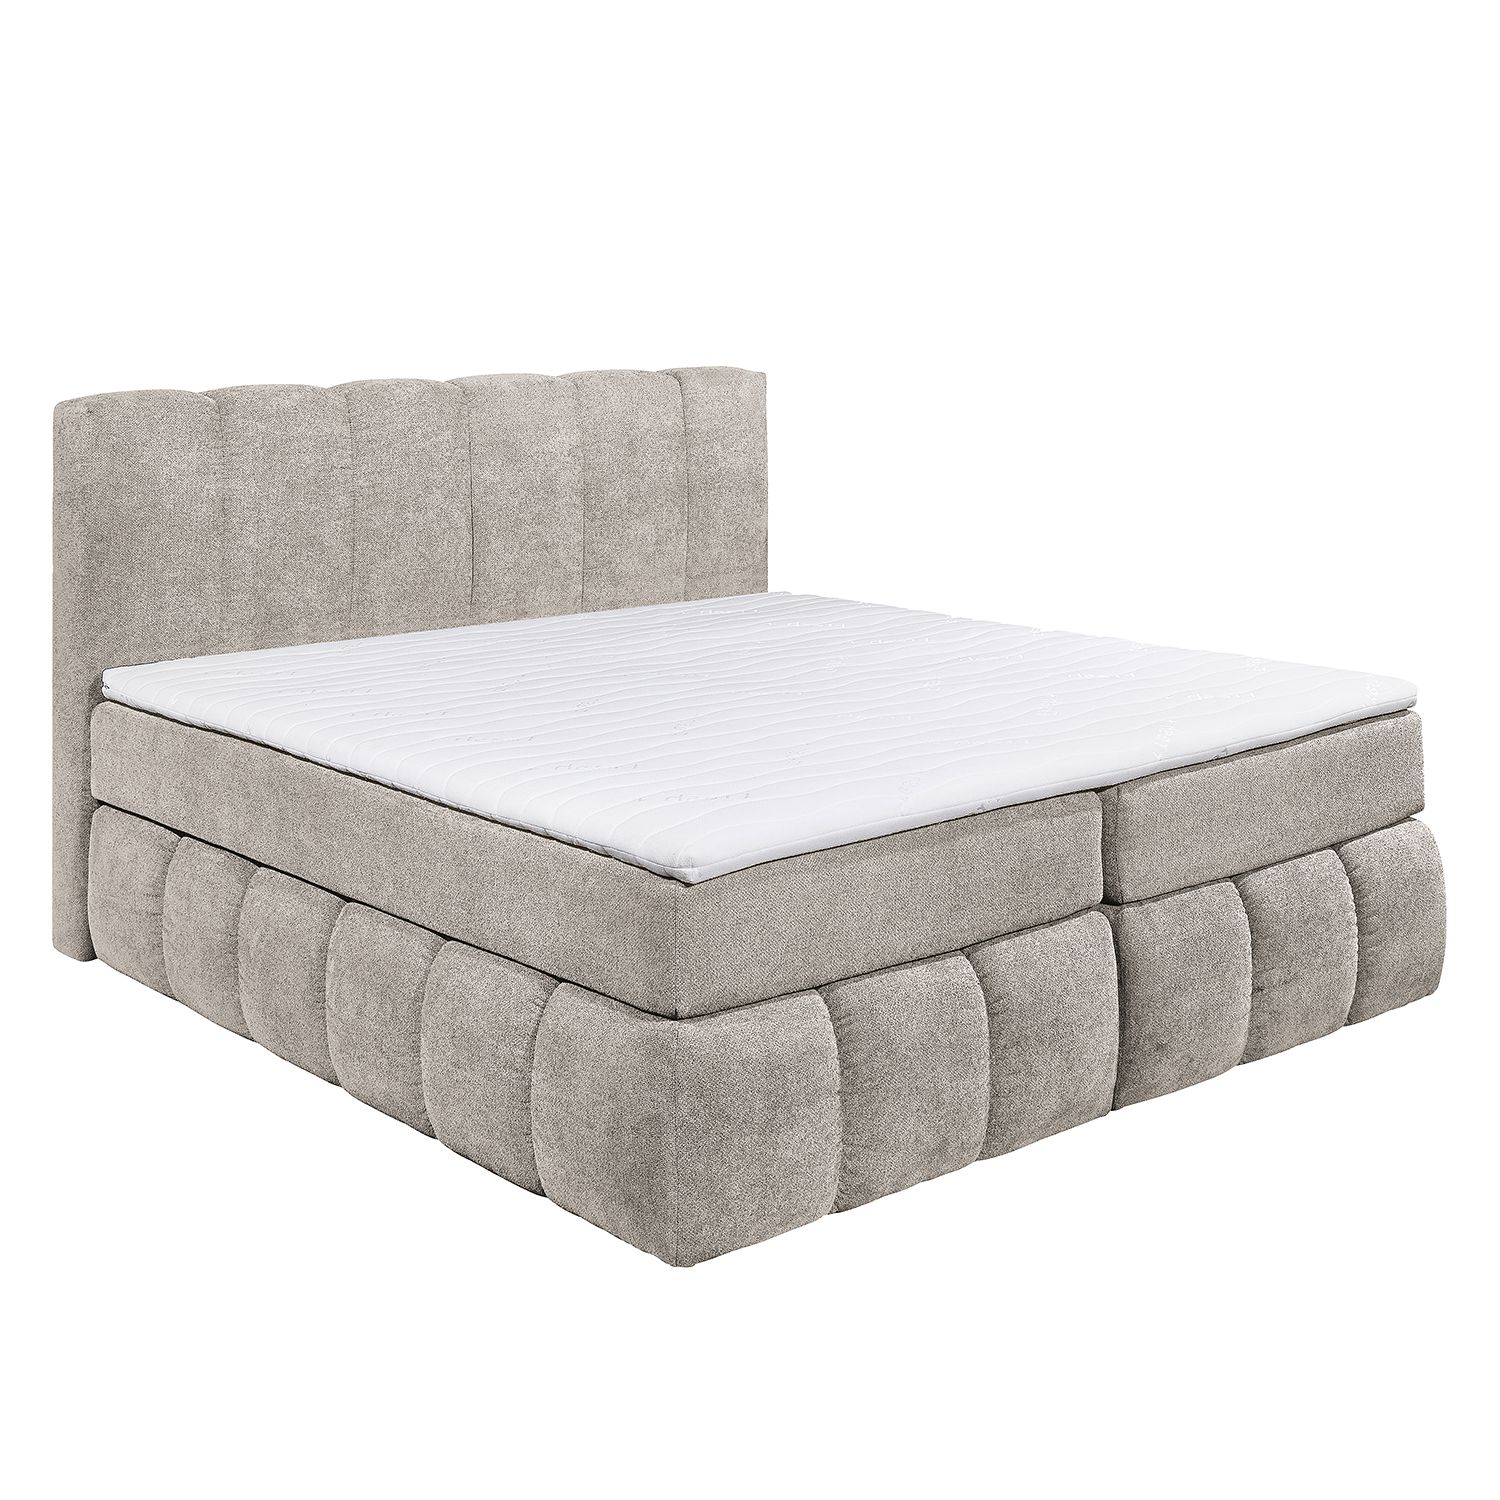 Lit boxspring Arville - Microvelours - Beige, loftscape